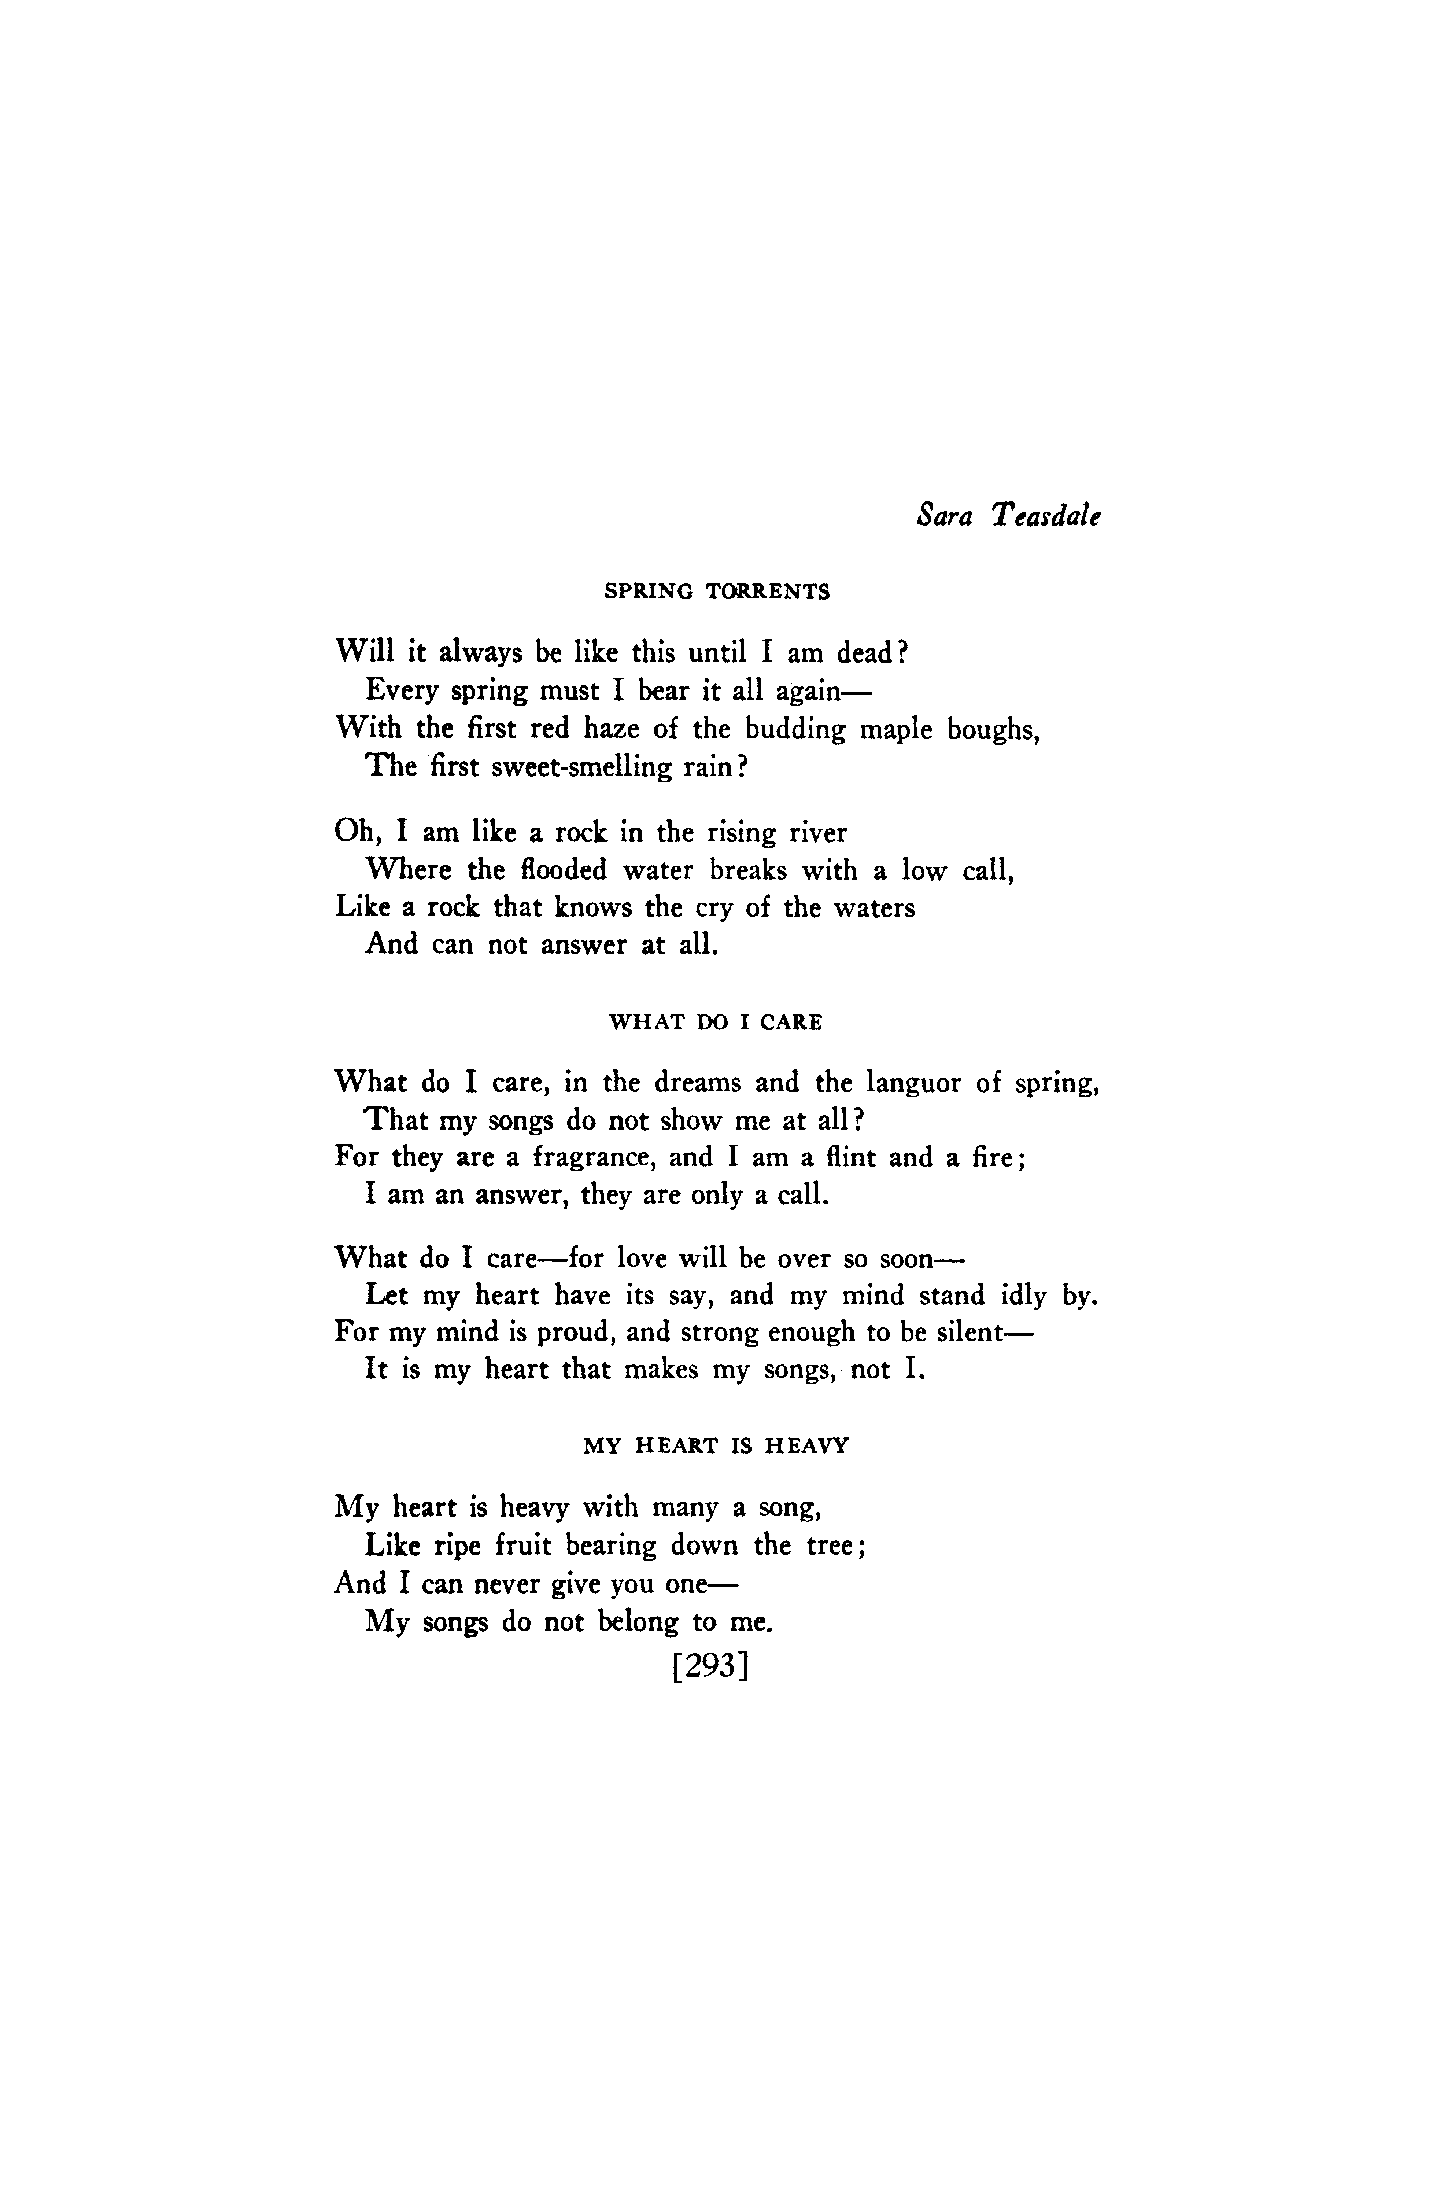 Poems about September 23